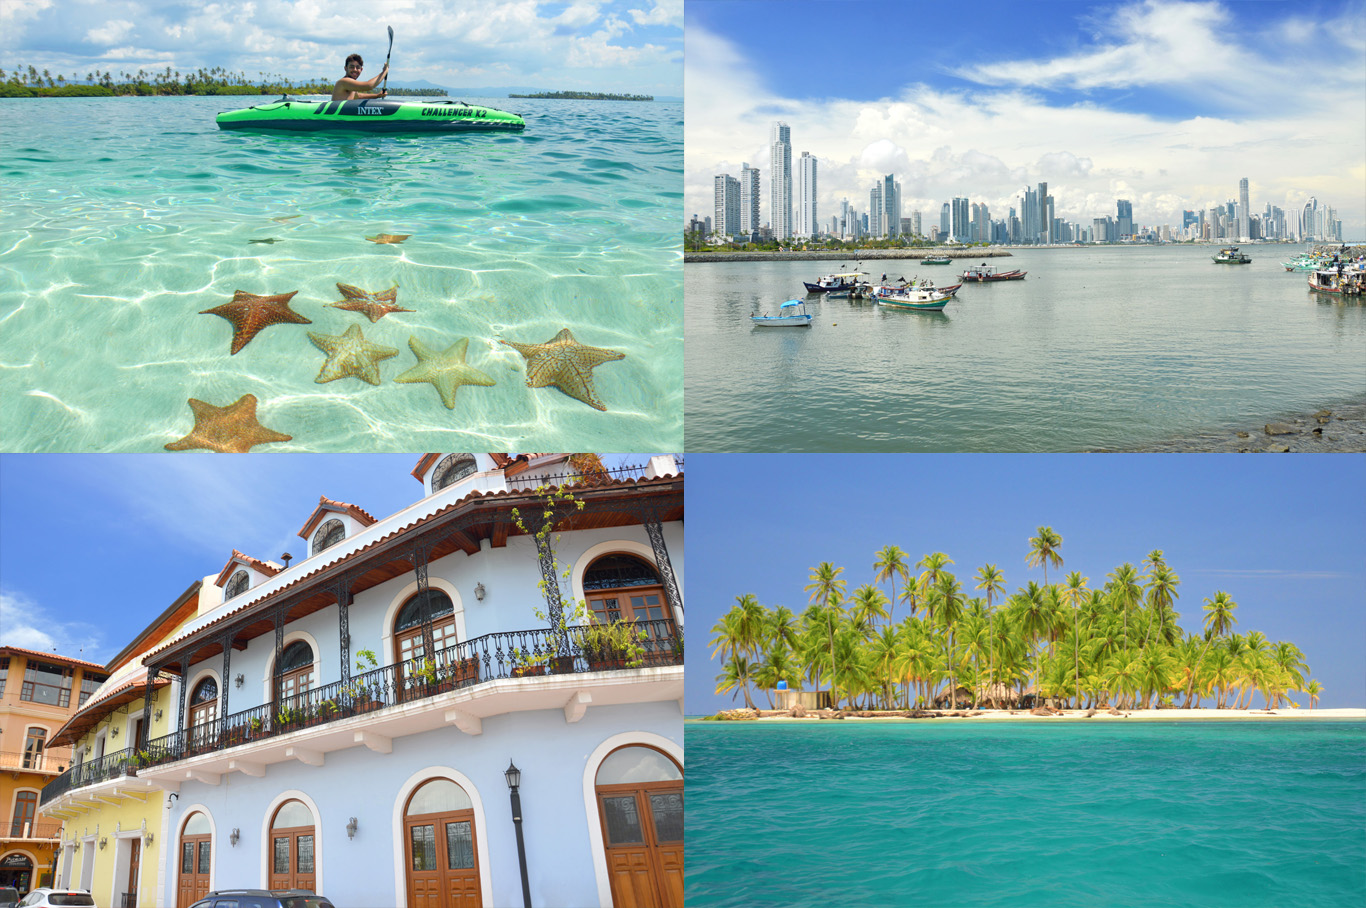 From left to right: Starfish in San Blas, skyscrapers in Panama City, Old town in Panama City and one of the paradise islands in San Blas archipelago